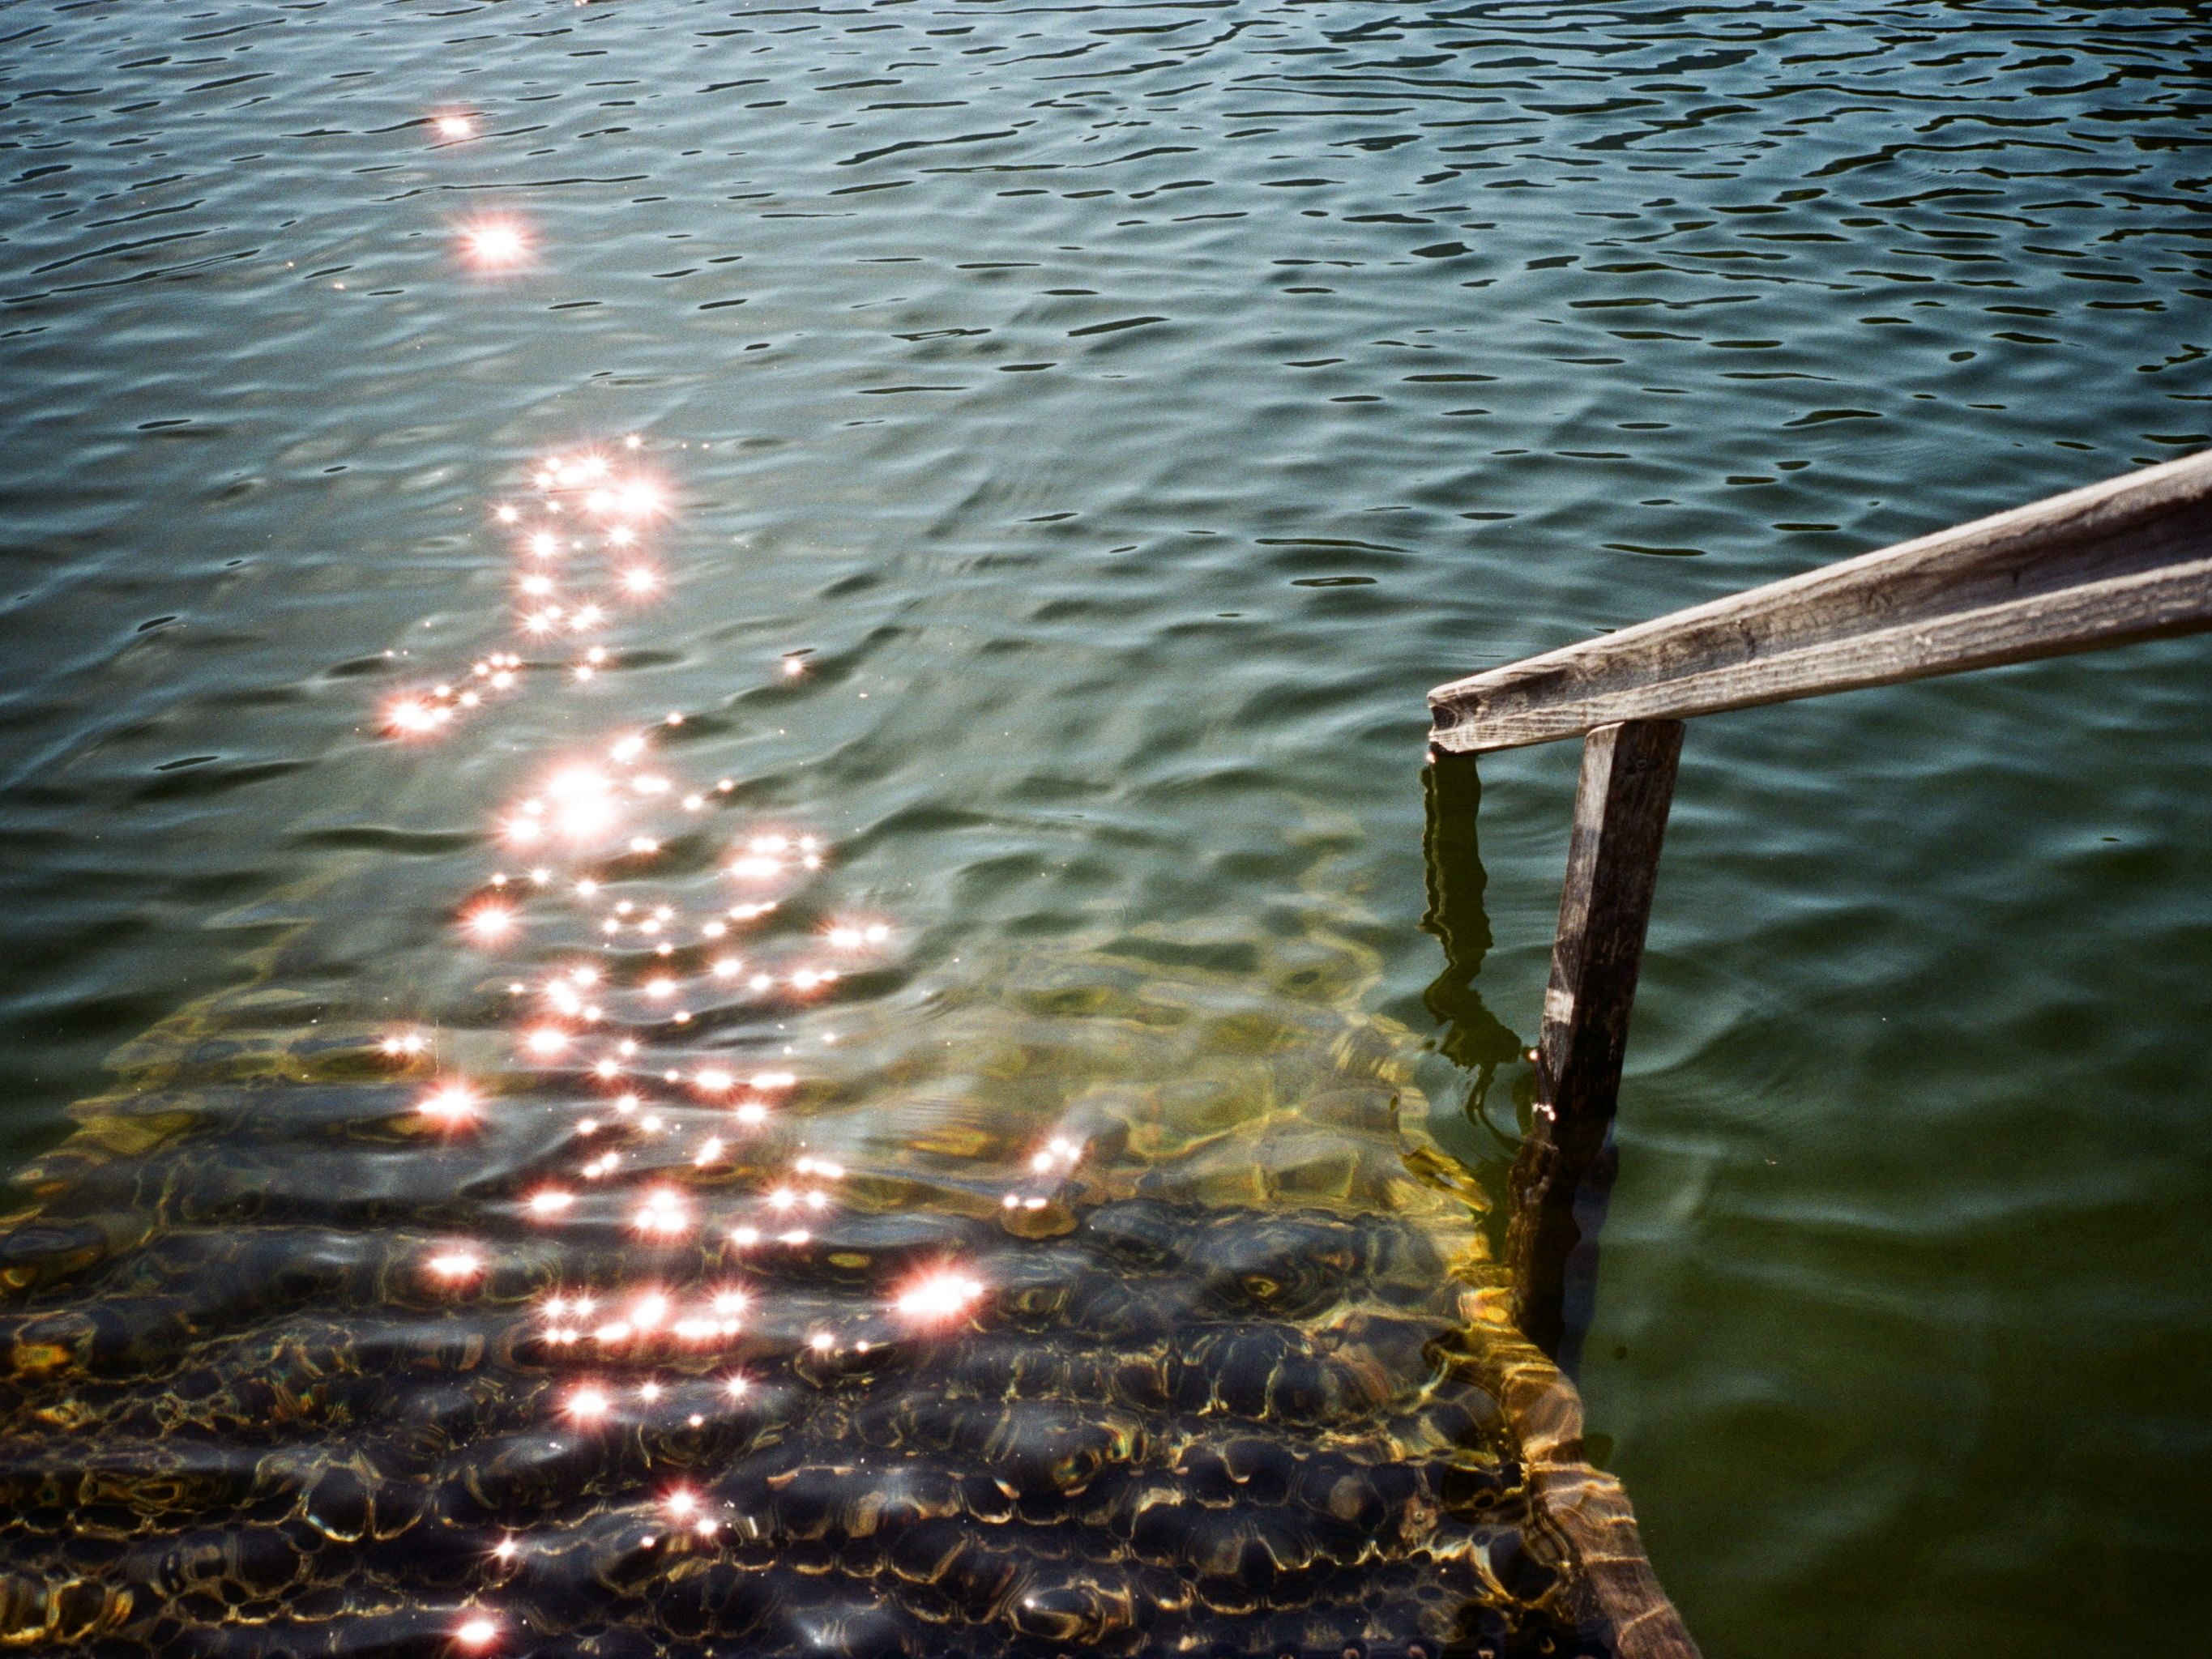 Photograph of steps down into the water in a lake taken on a sunny day with the sun glistening on the water by Pippa Healy - MA Fine Art: Printmaking